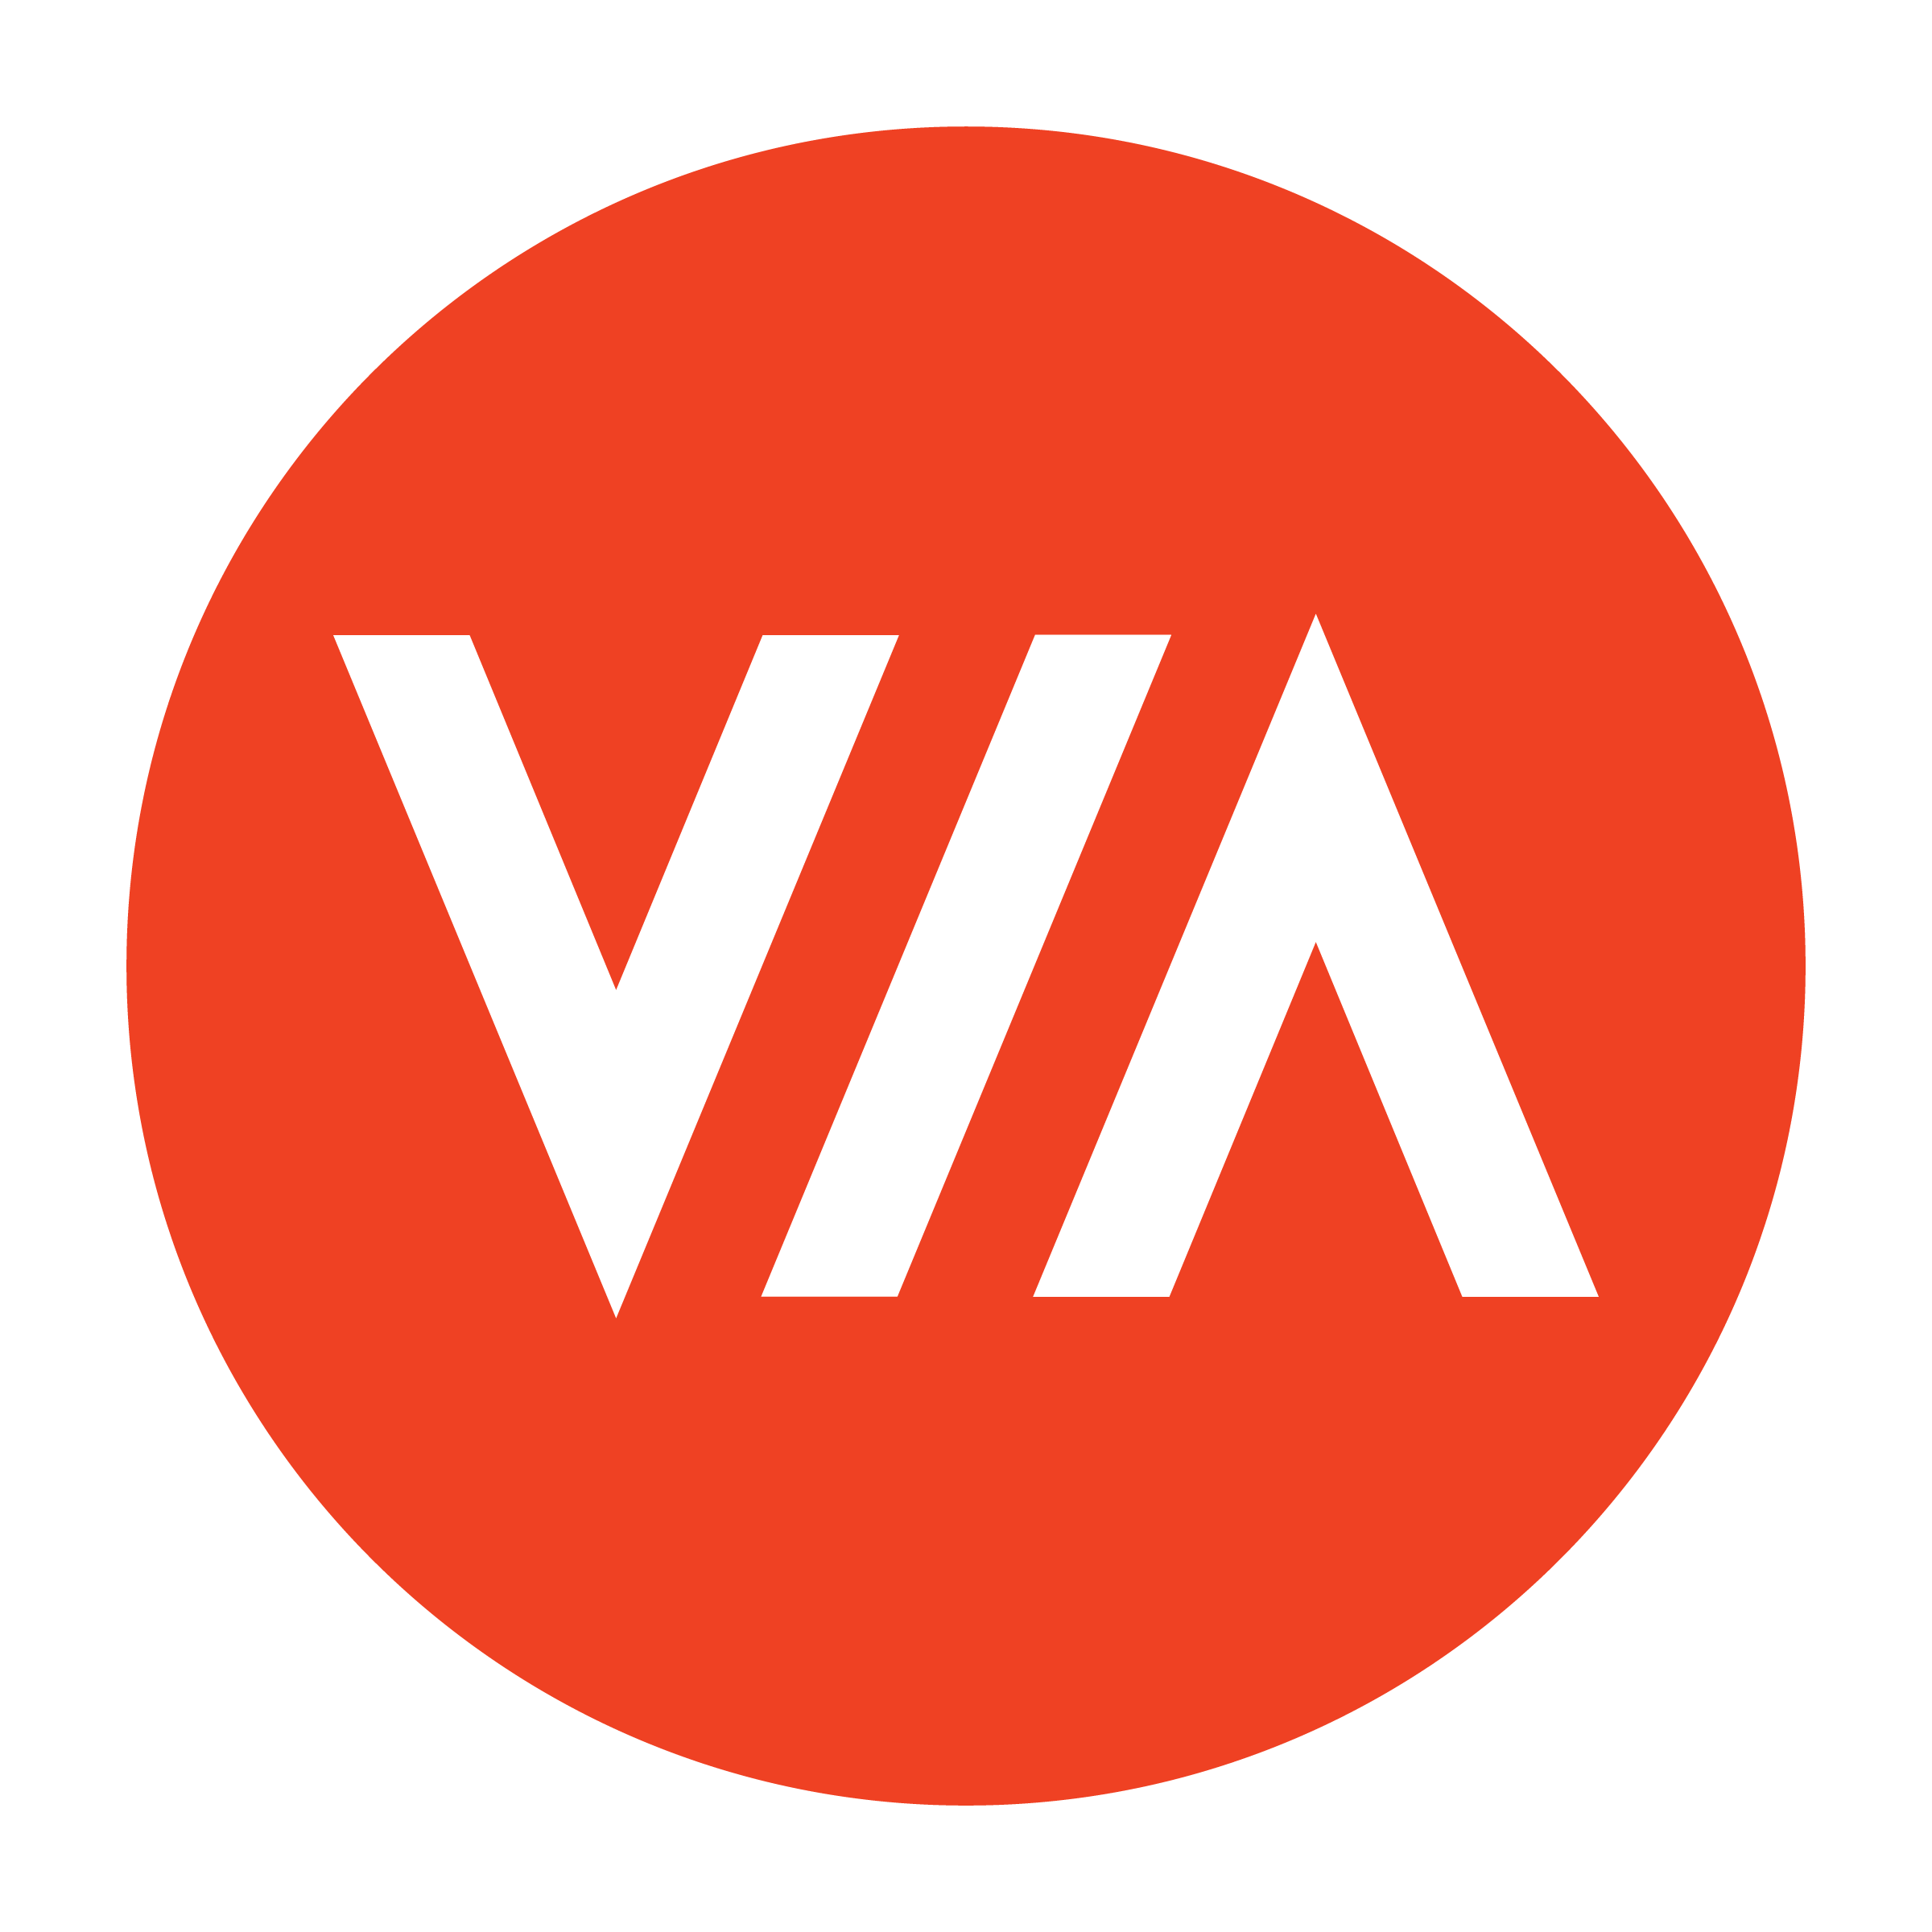 The VIA Agency